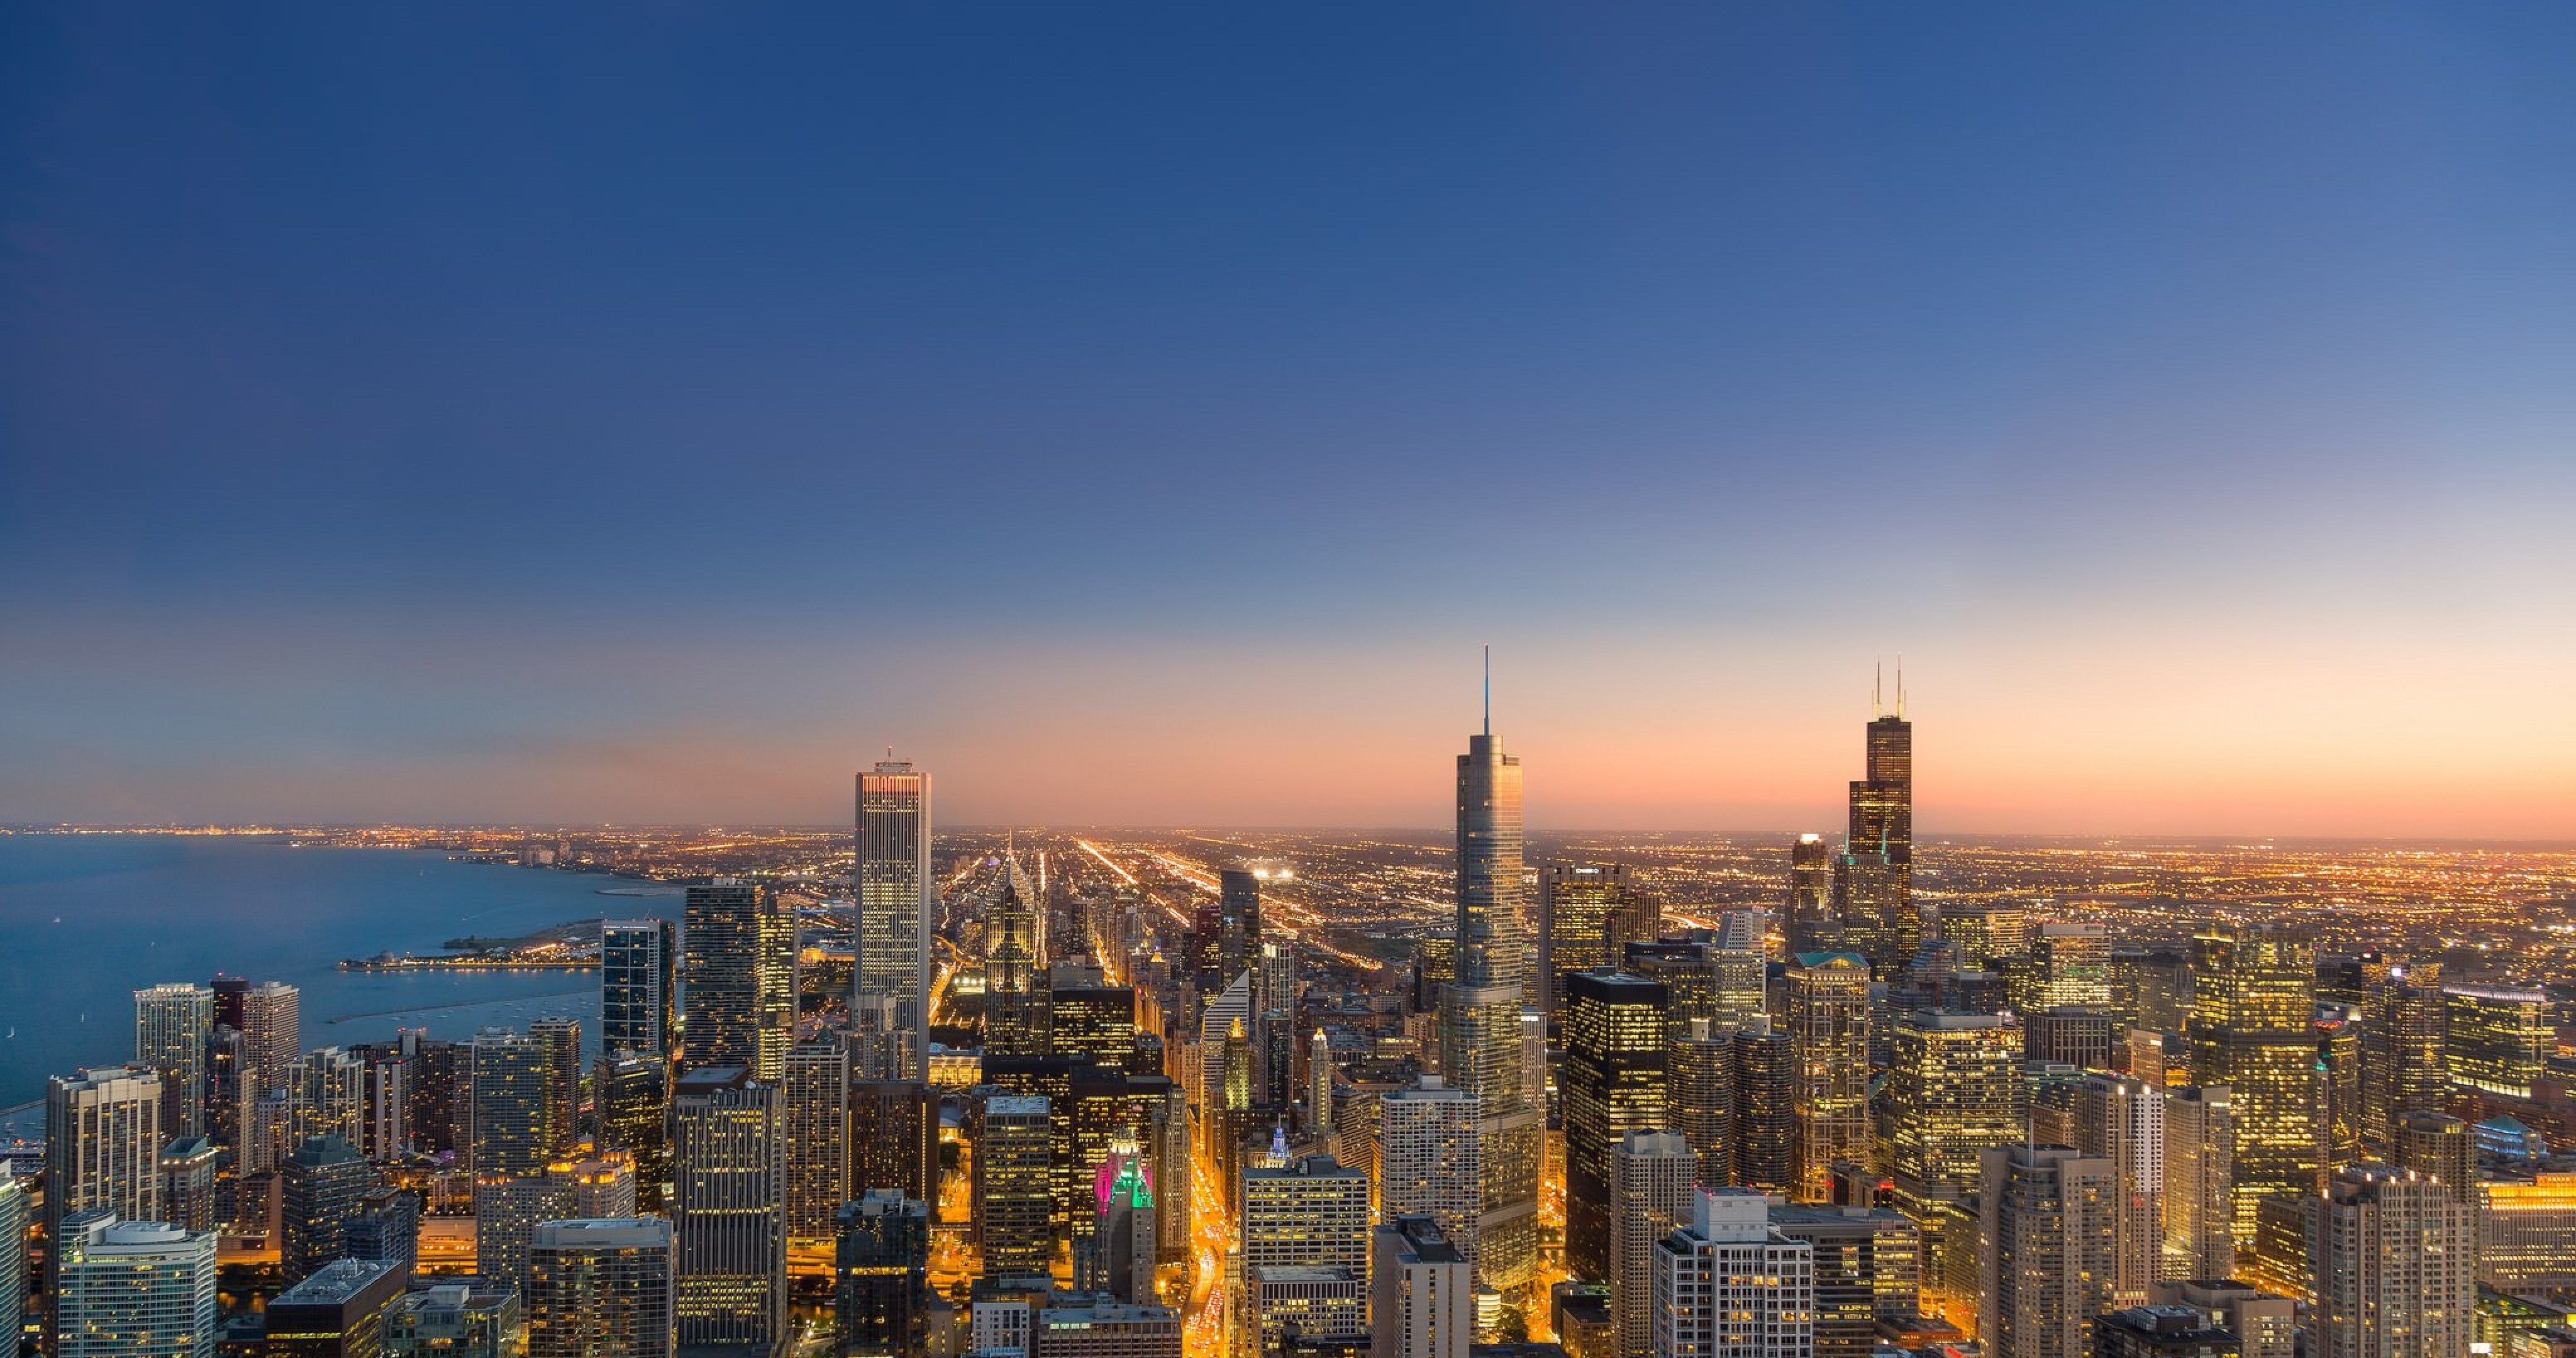 chicago evening city wallpaper 4k ultra hd wallpaper